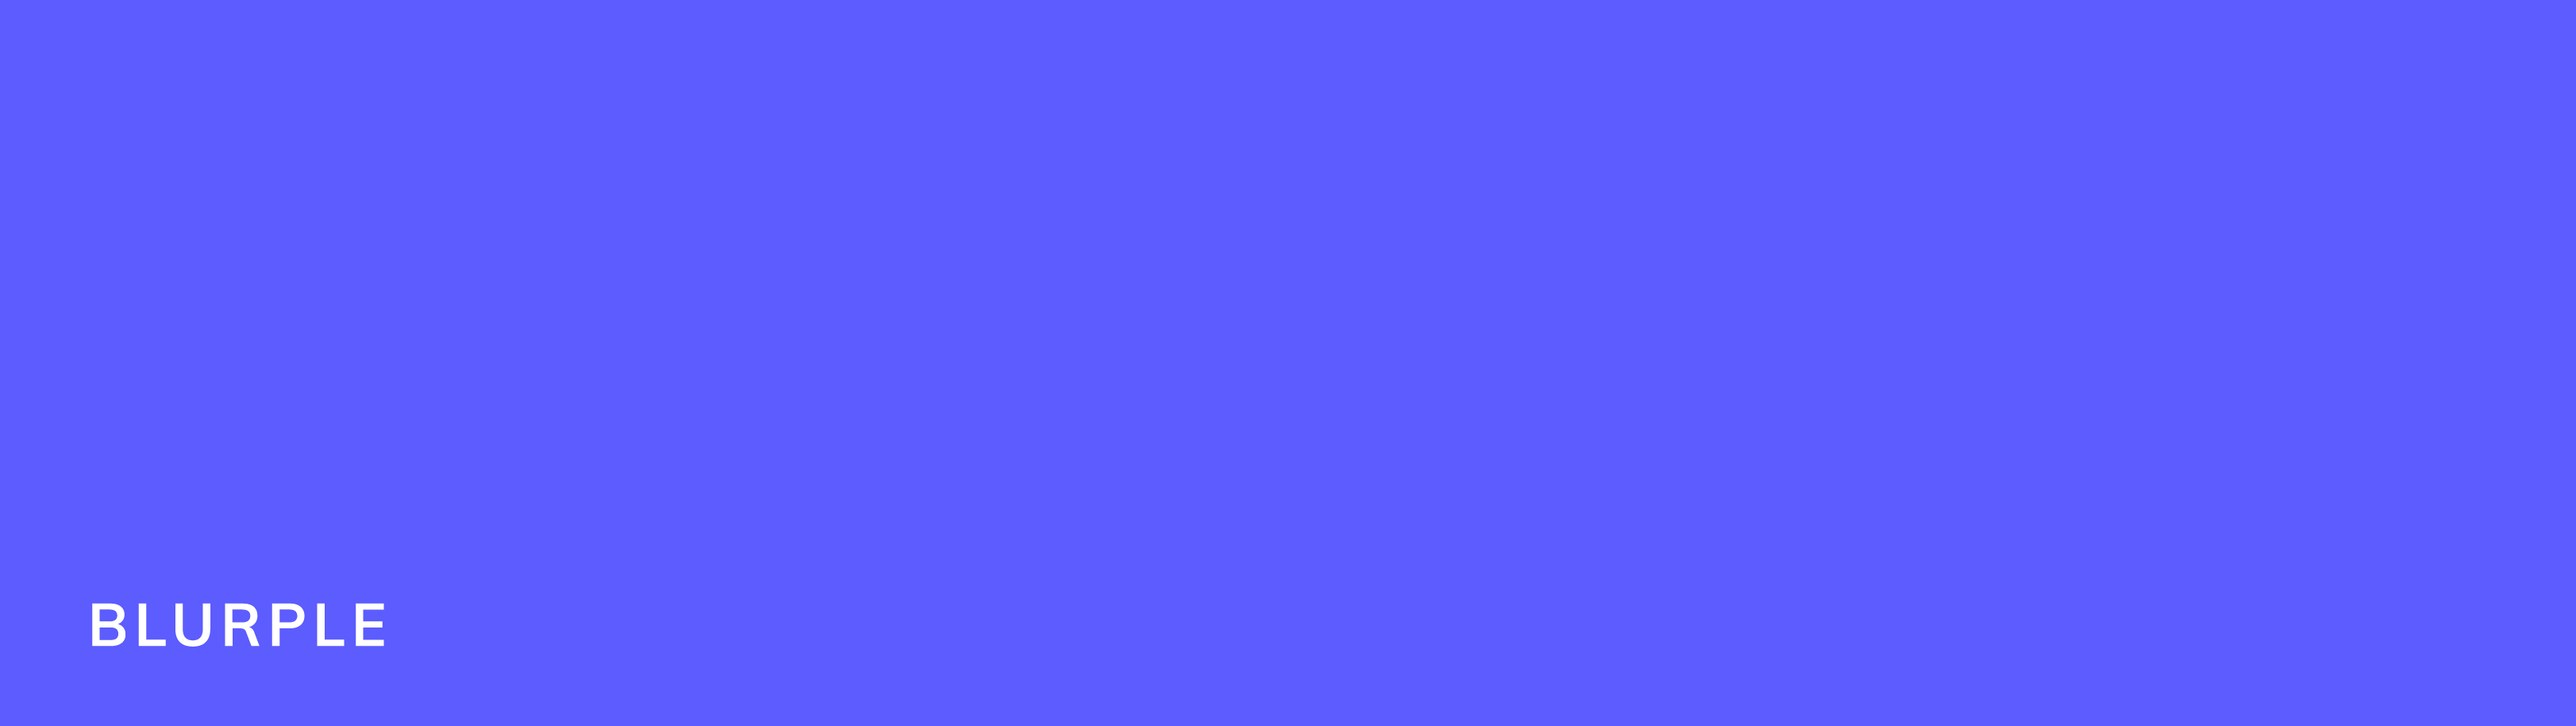 This is the primary Appcues brand color. It is a vibrant blue-ish purple called Blurple.